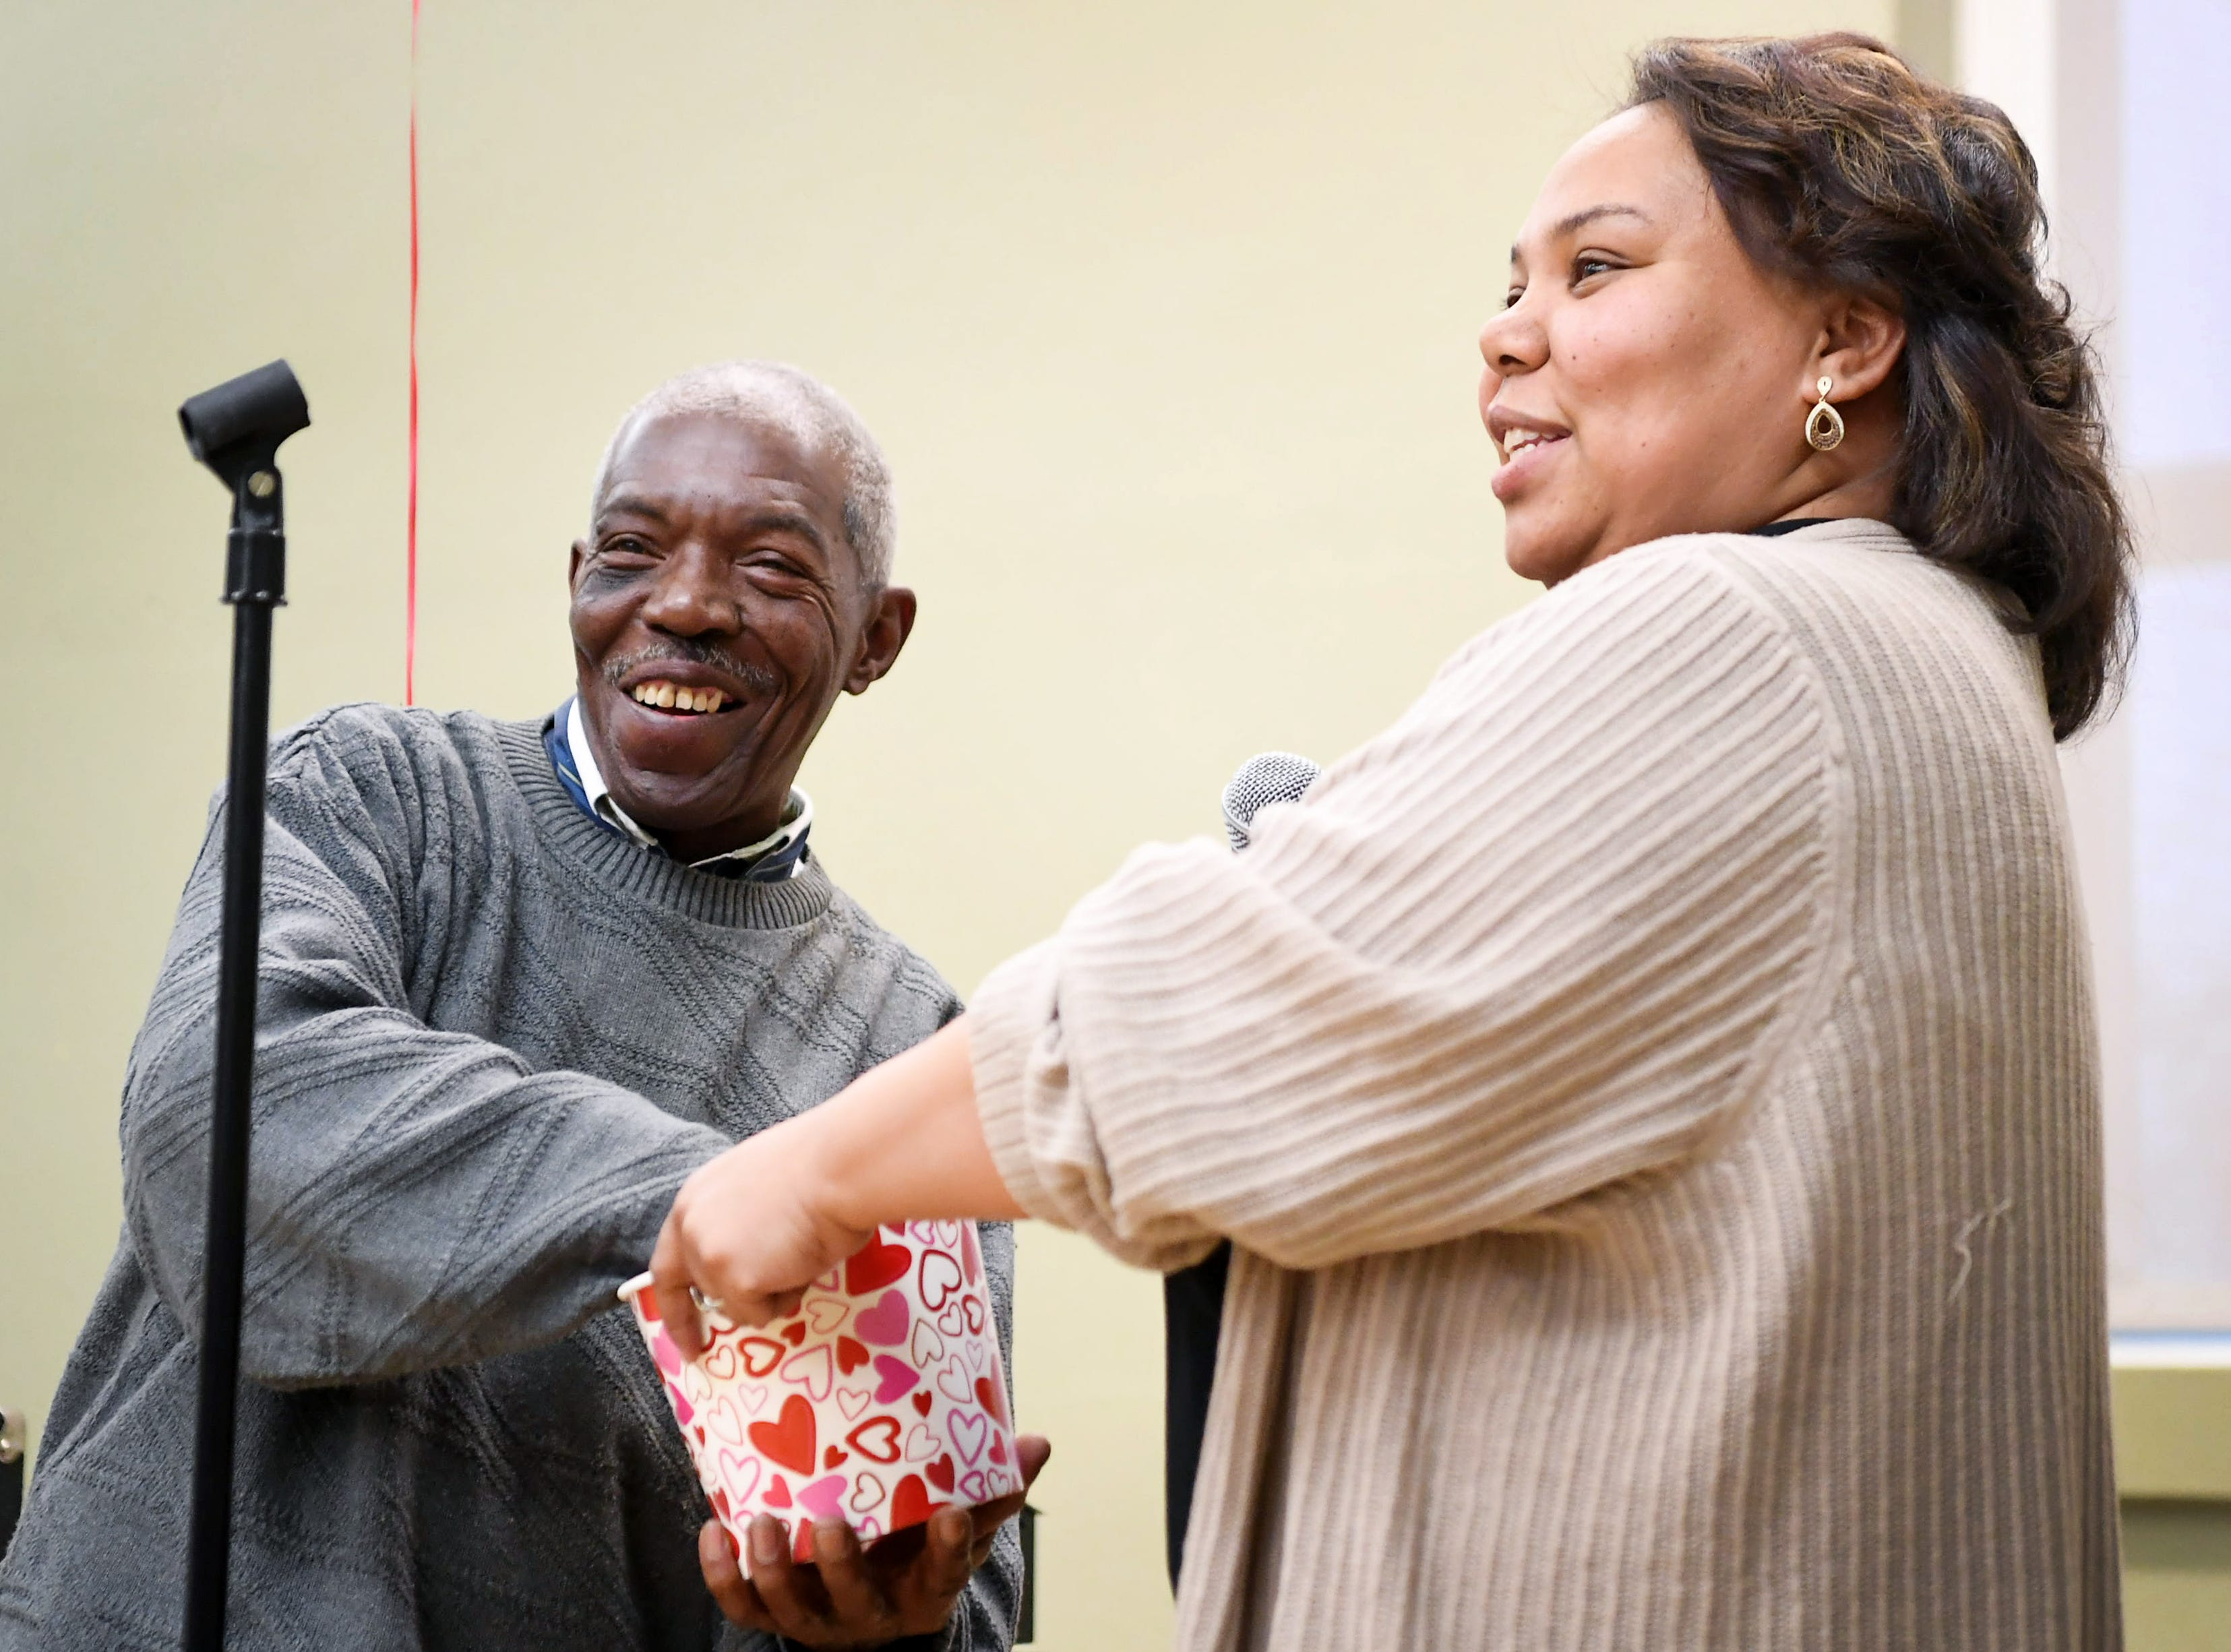 Shateisha Bowden, facility director of Burton Street, prepares to announce a door prize as emcee Harry McLaughlin draws the winner at the District 9 senior club's Valentine social at the Stephens-Lee Recreation Center in Asheville Feb. 12, 2019.